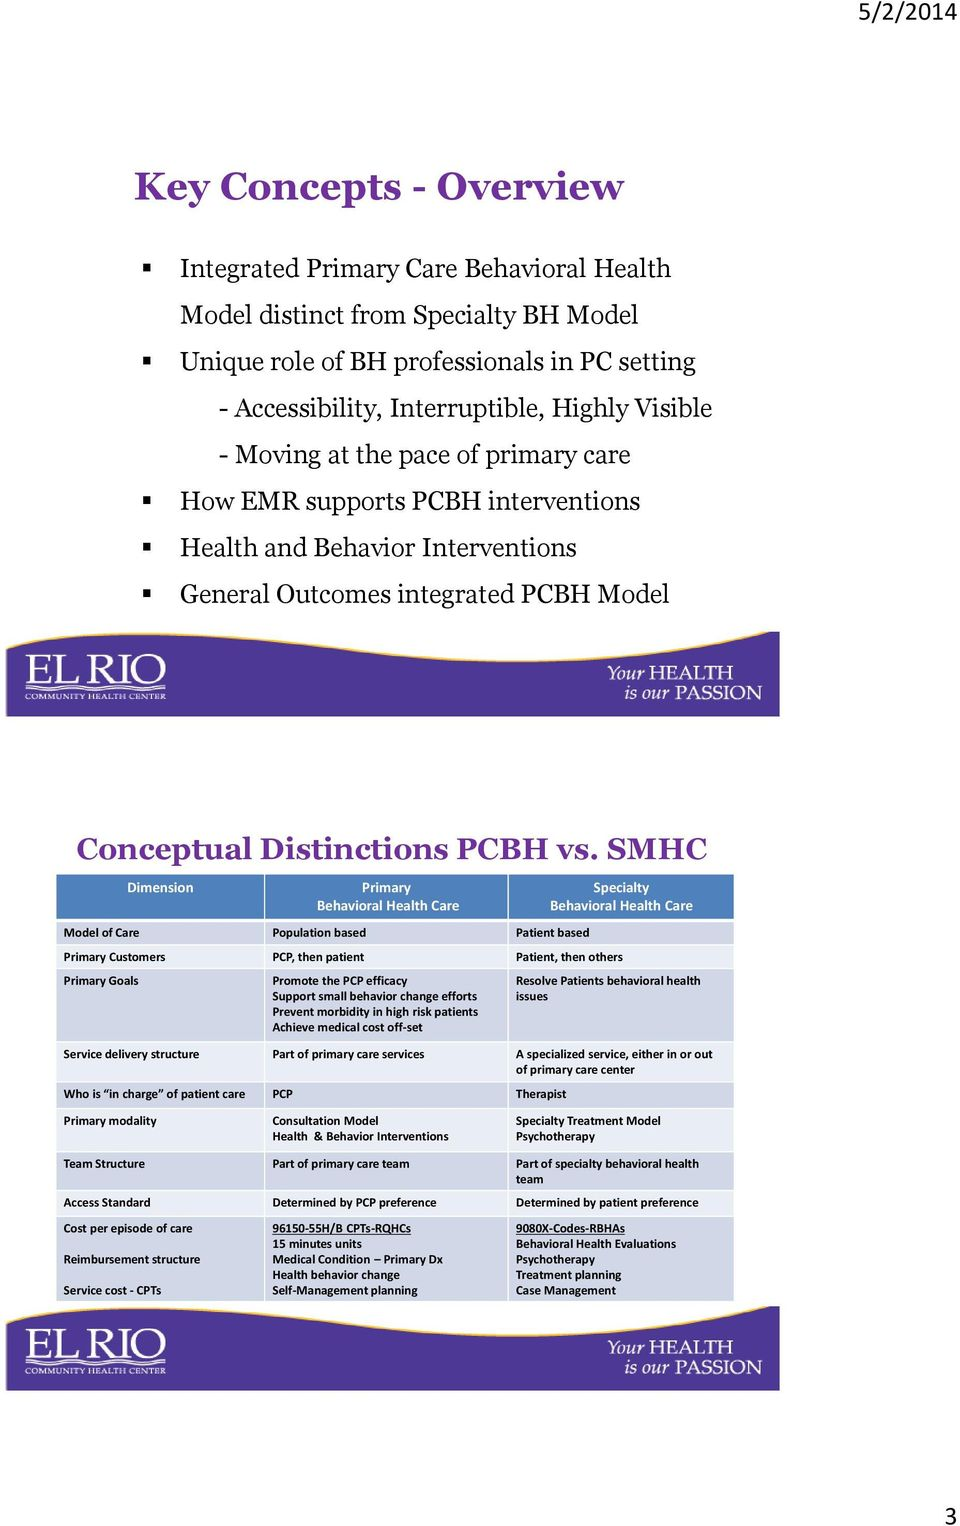 SMHC Dimension Primary Behavioral Health Care Model of Care Population based Patient based Specialty Behavioral Health Care Primary Customers PCP, then patient Patient, then others Primary Goals